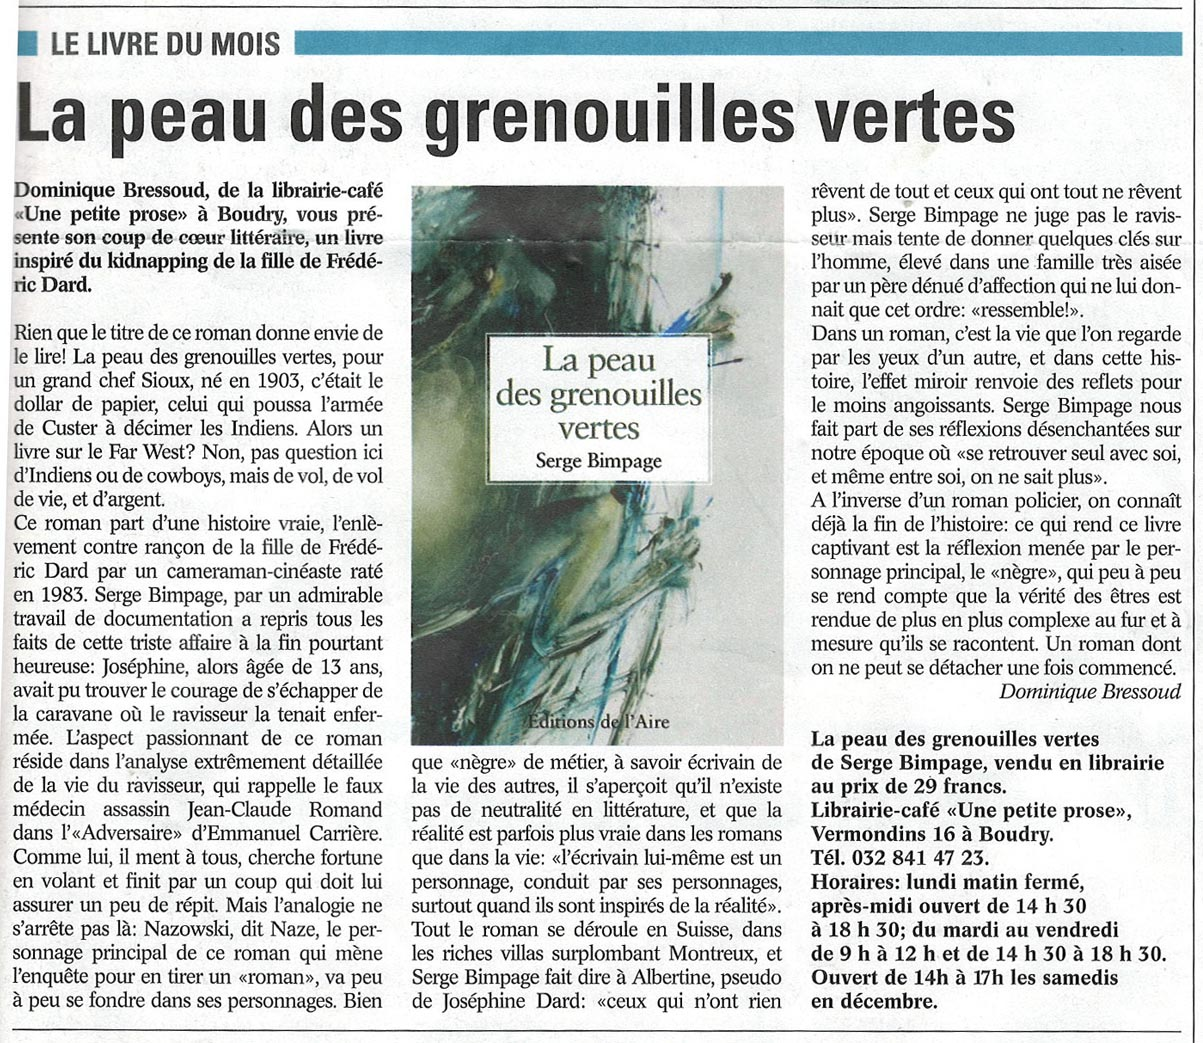 article du littoral region 20 novembre 2015 par Dominique Bressoud